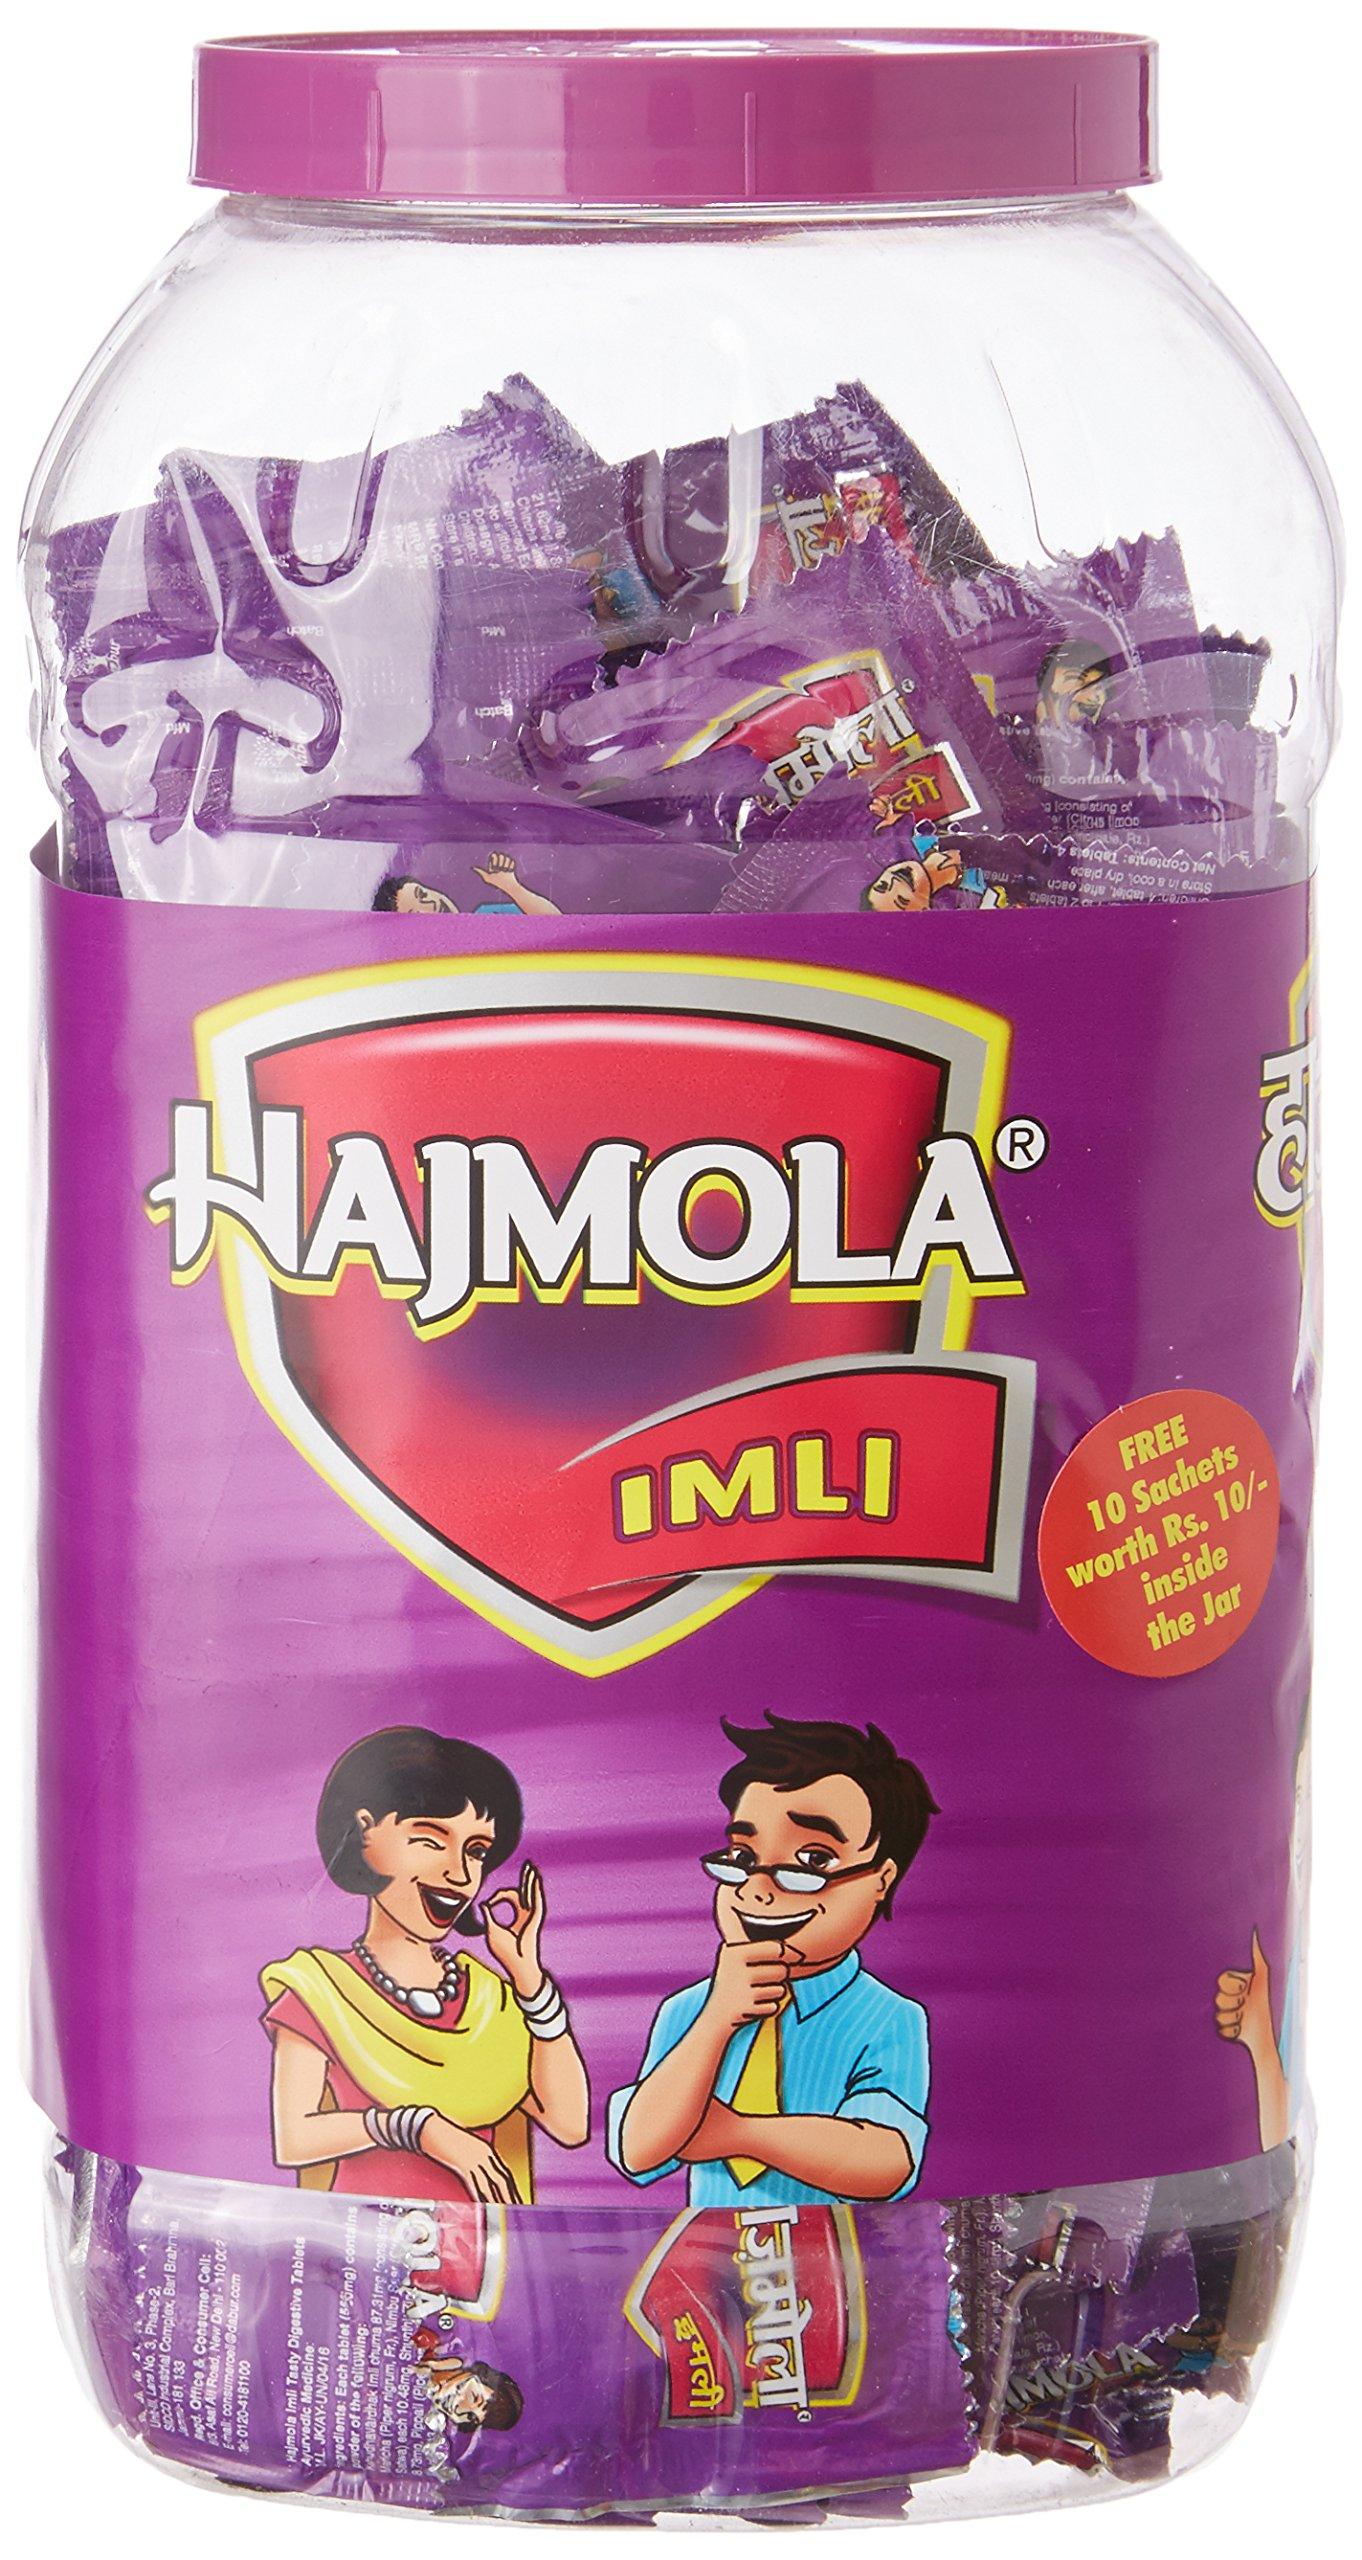 Dabur Hajmola Imli - Tasty Digestive Tablets - 160 Sachet Jar with Dabur Amla Hair Oil - 25 ml